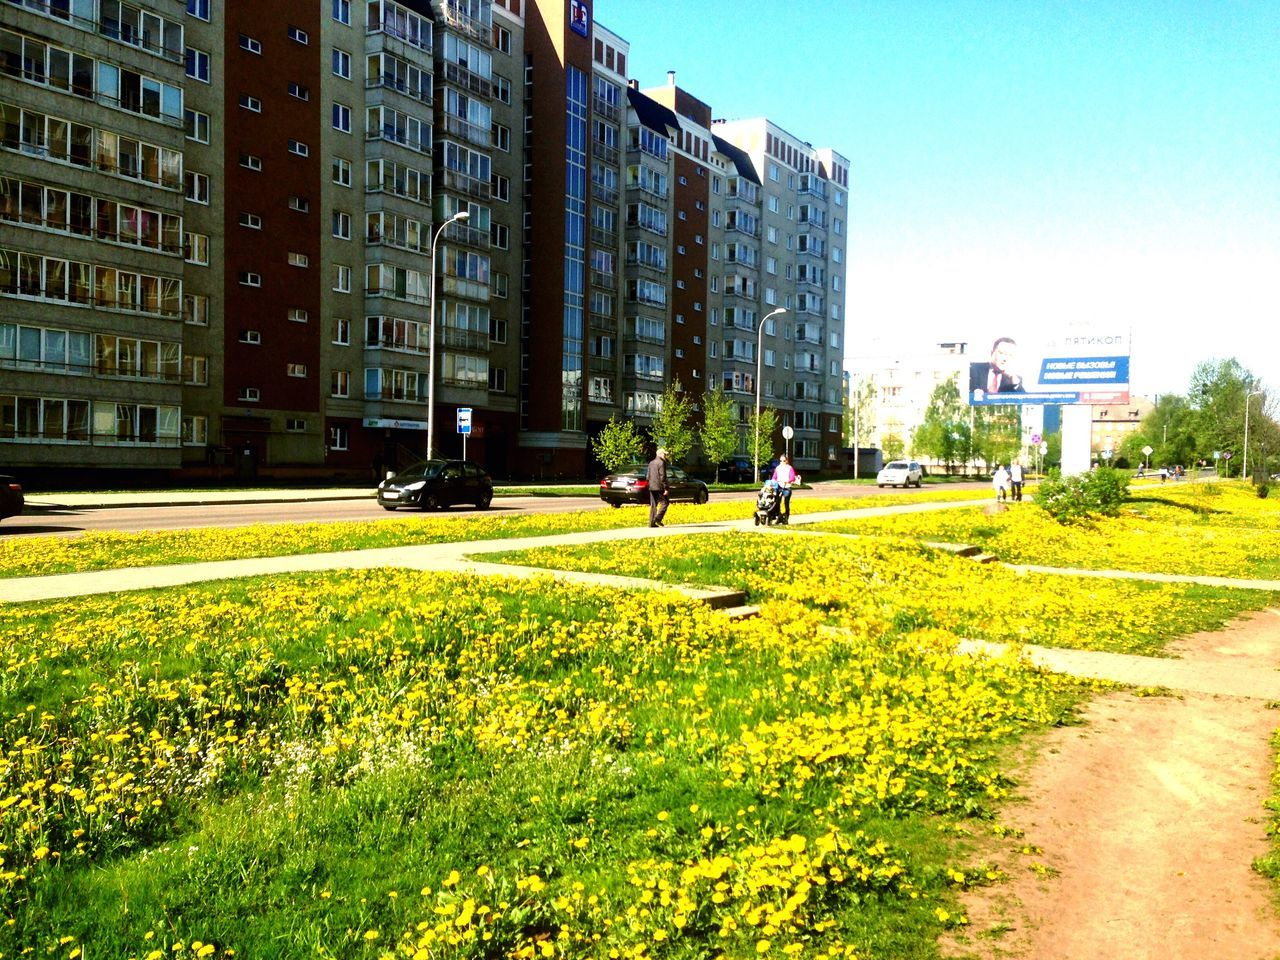 architecture, building exterior, built structure, grass, day, city, outdoors, sunlight, growth, real people, clear sky, nature, tree, flower